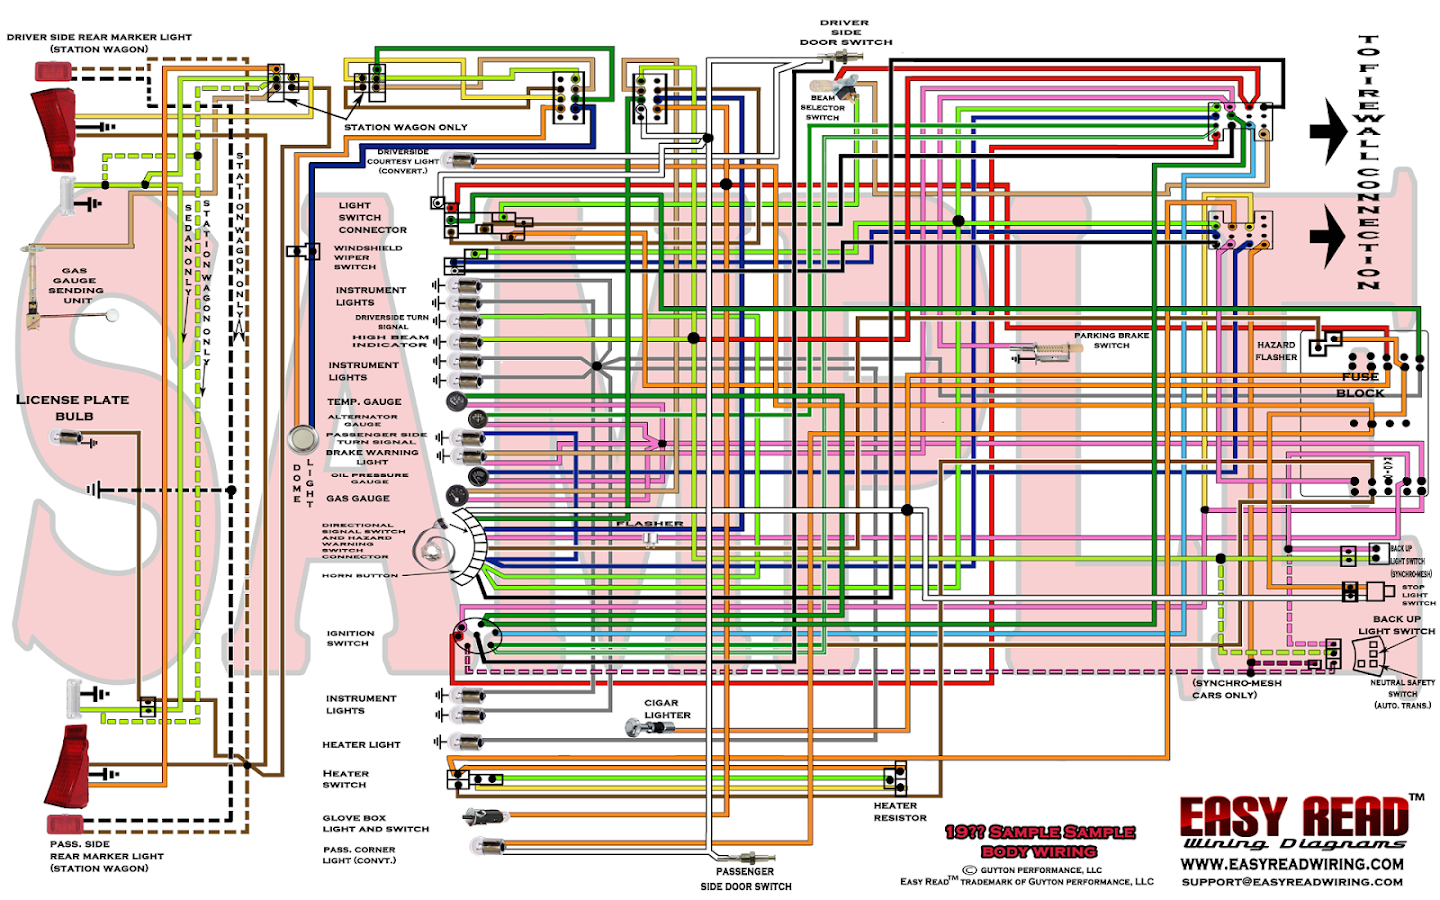 1970 Nova Wiring Diagram Android Apps On Google Play